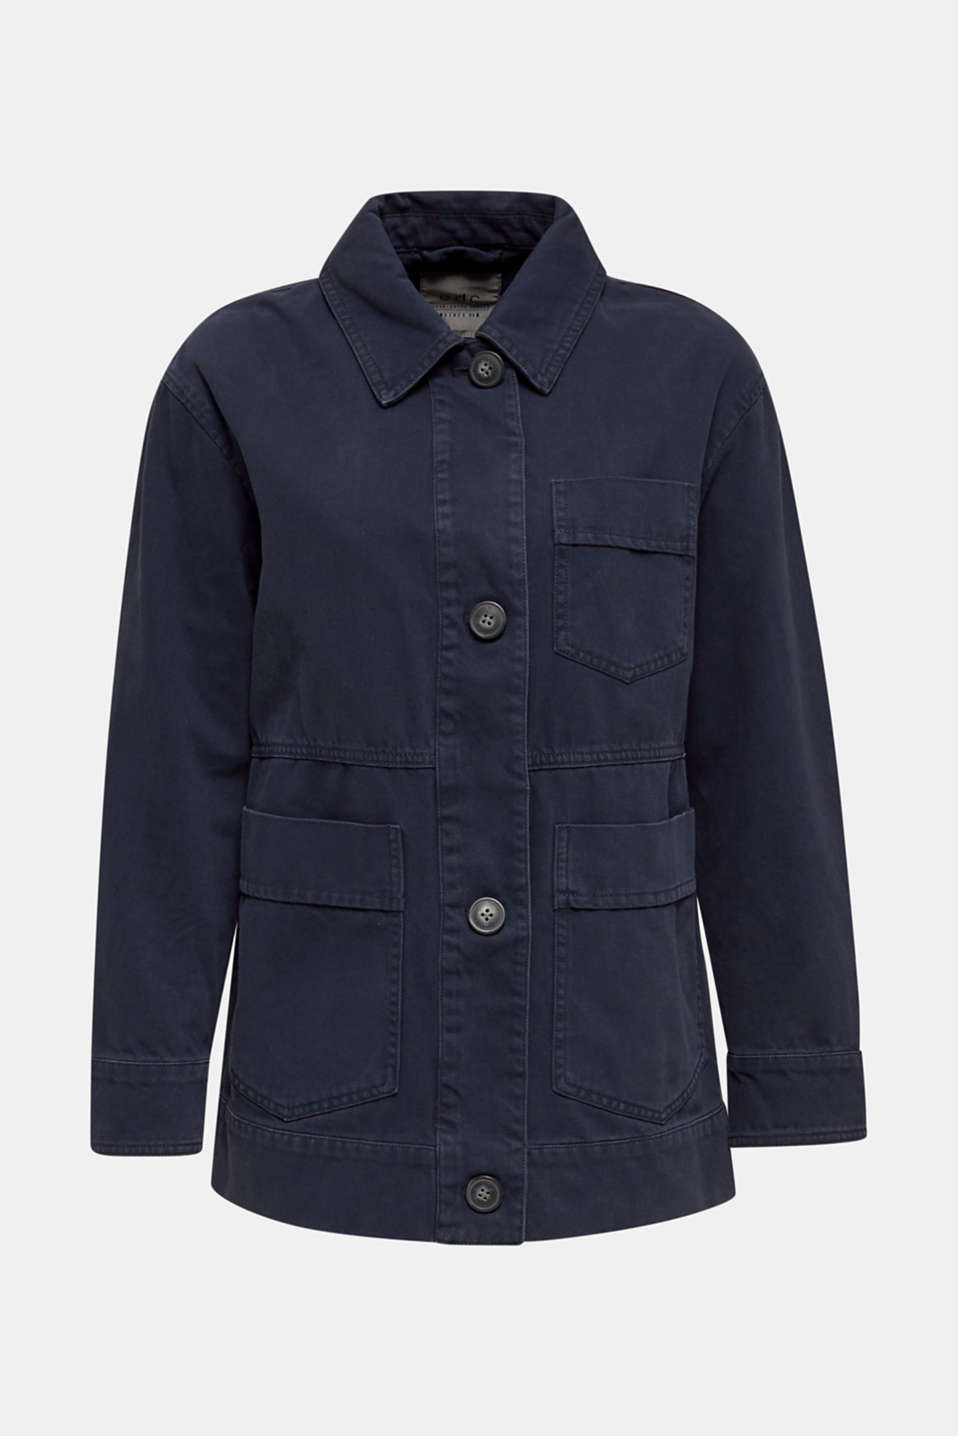 Worker jacket with pockets, 100% cotton, NAVY, detail image number 7